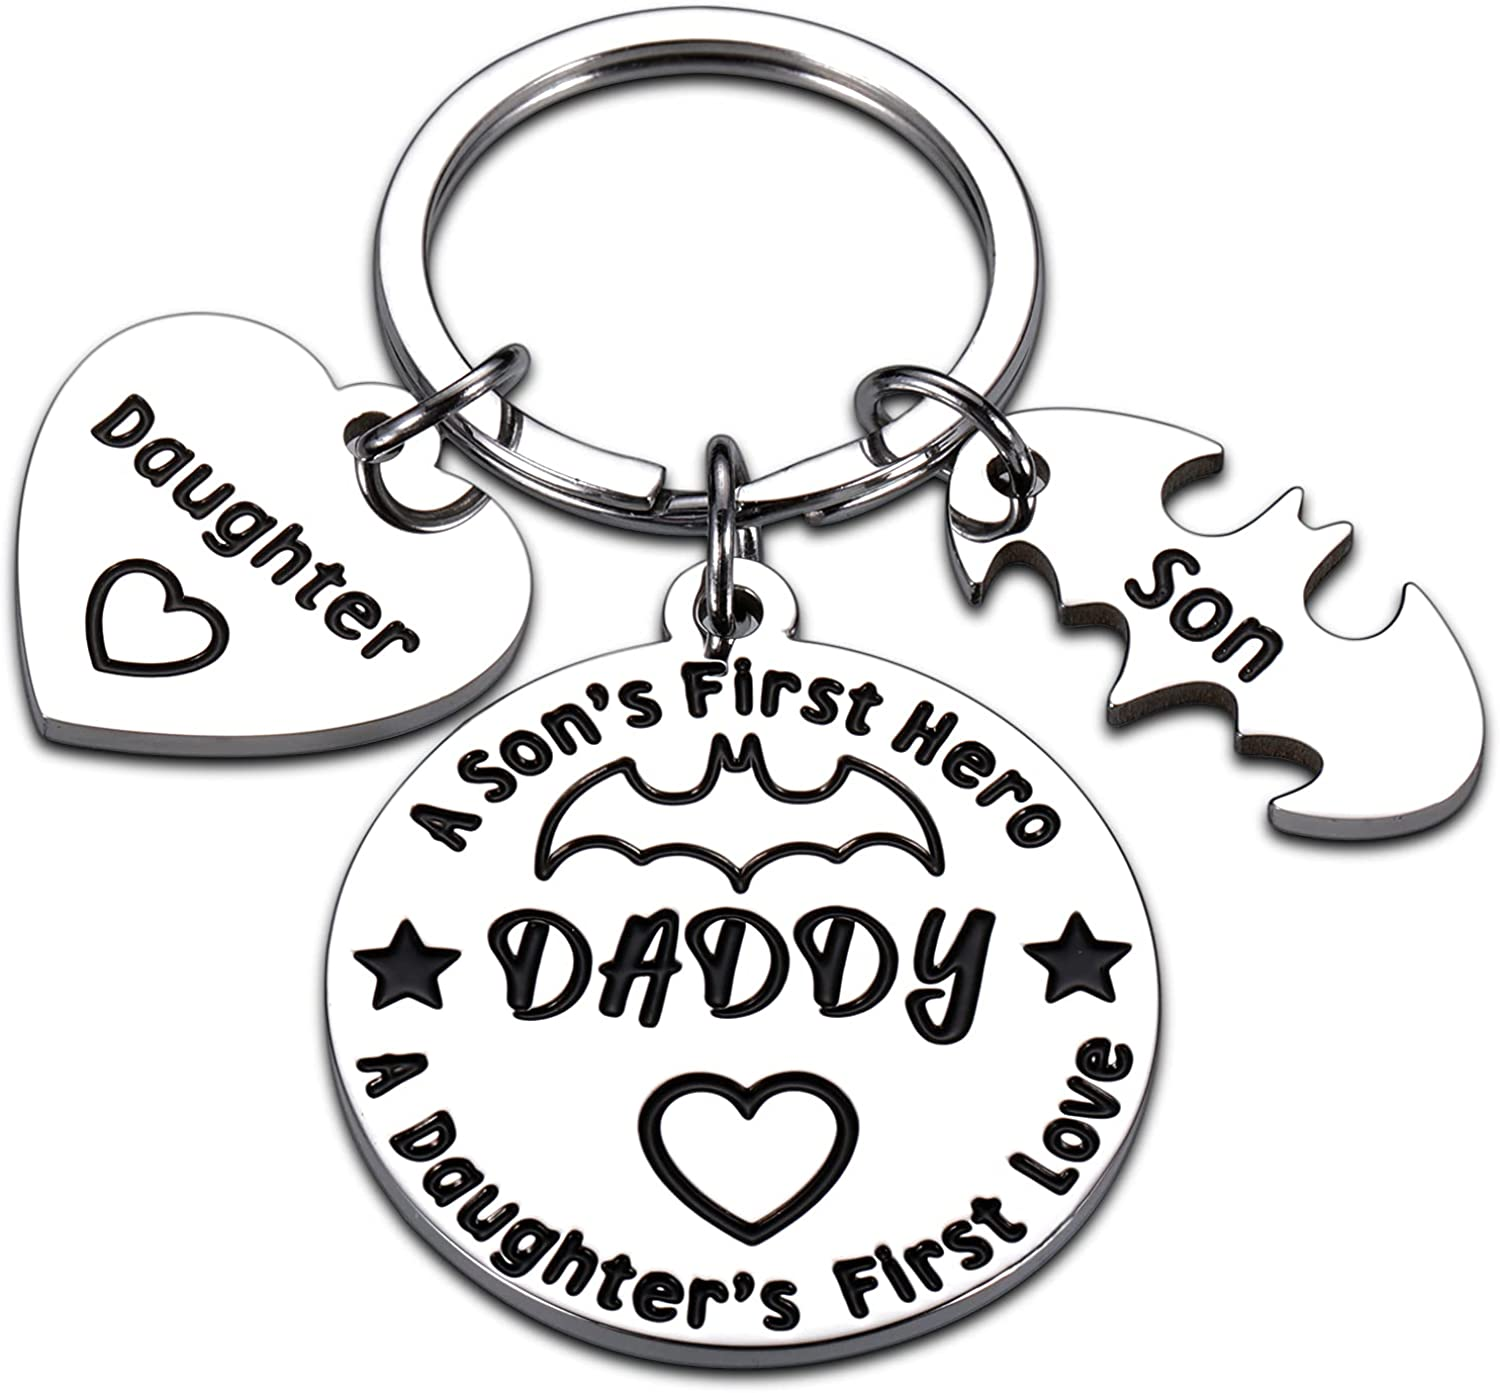 Funny Dad Keychain Gifts from Son Daughter to Daddy Step Dad Father's Day Birthday Thank You Gifts for Father in Law New Dad to Be Husband Godfather Papa from Kids Wife Wedding Gag Gifts for Men Him